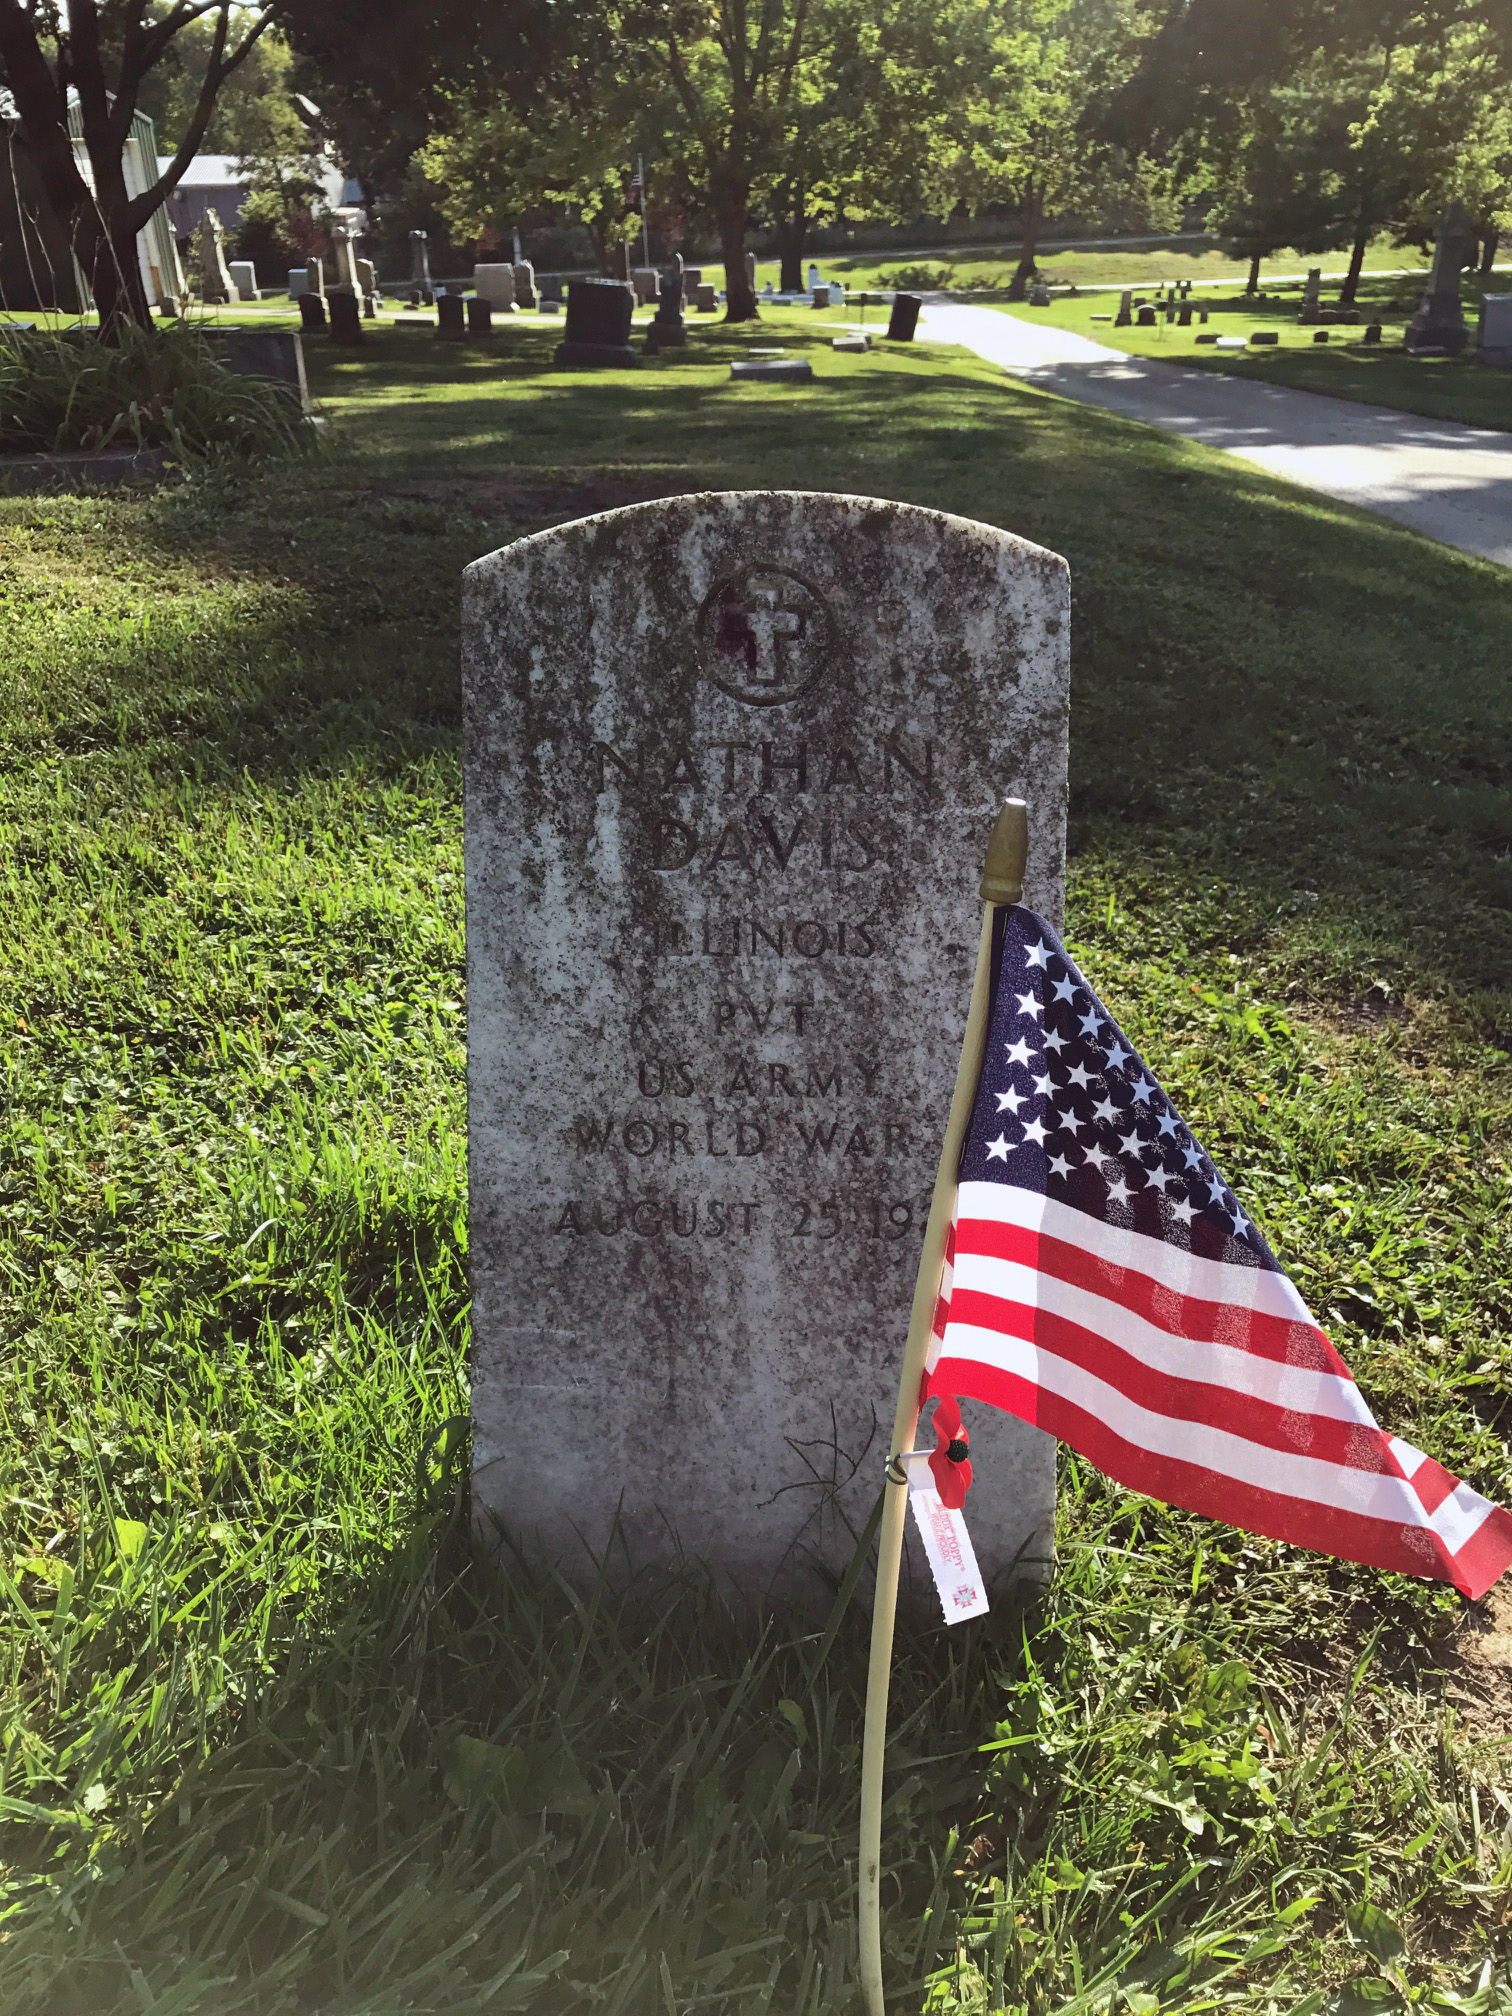 Grave site of Nathan Davis, Pvt Co. M Dev BN No. 2. Grave is marked with a U.S. Flag and poppy at Evergreen Memorial Cemetery, Bloomington, IL.